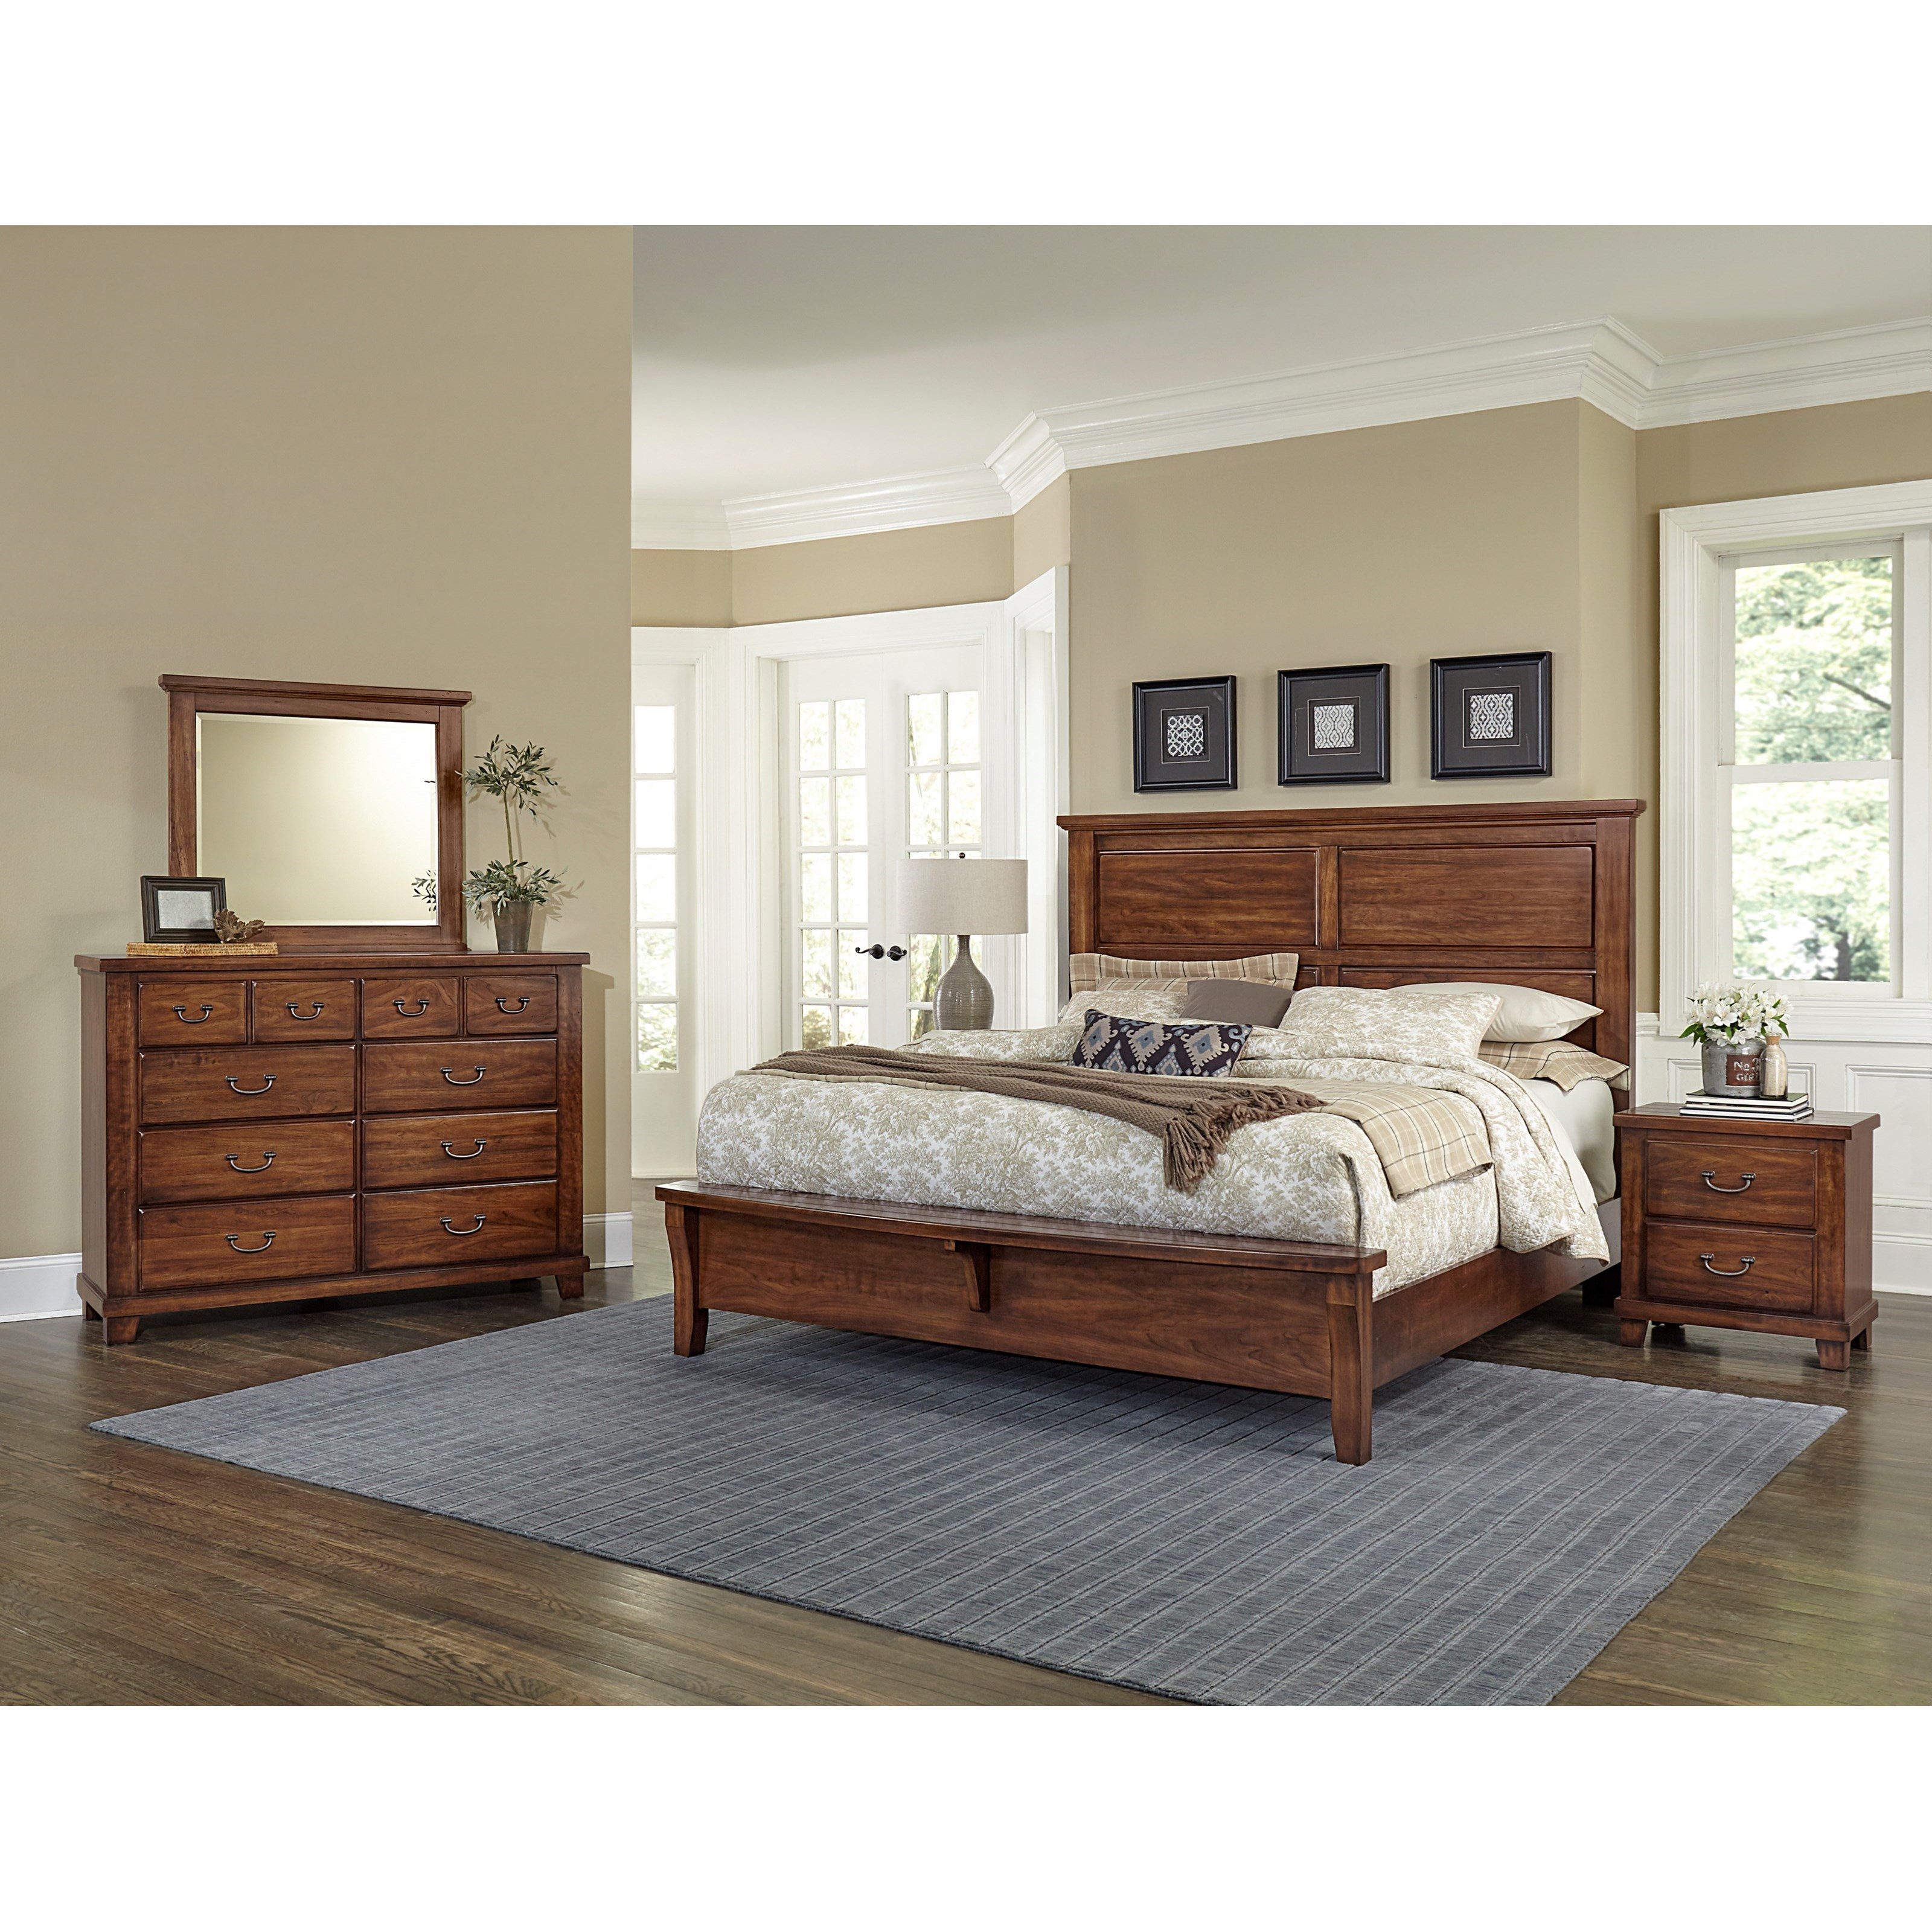 Vaughan Bassett American Cherry King Bedroom Group - Item Number: 415 K Bedroom Group 4